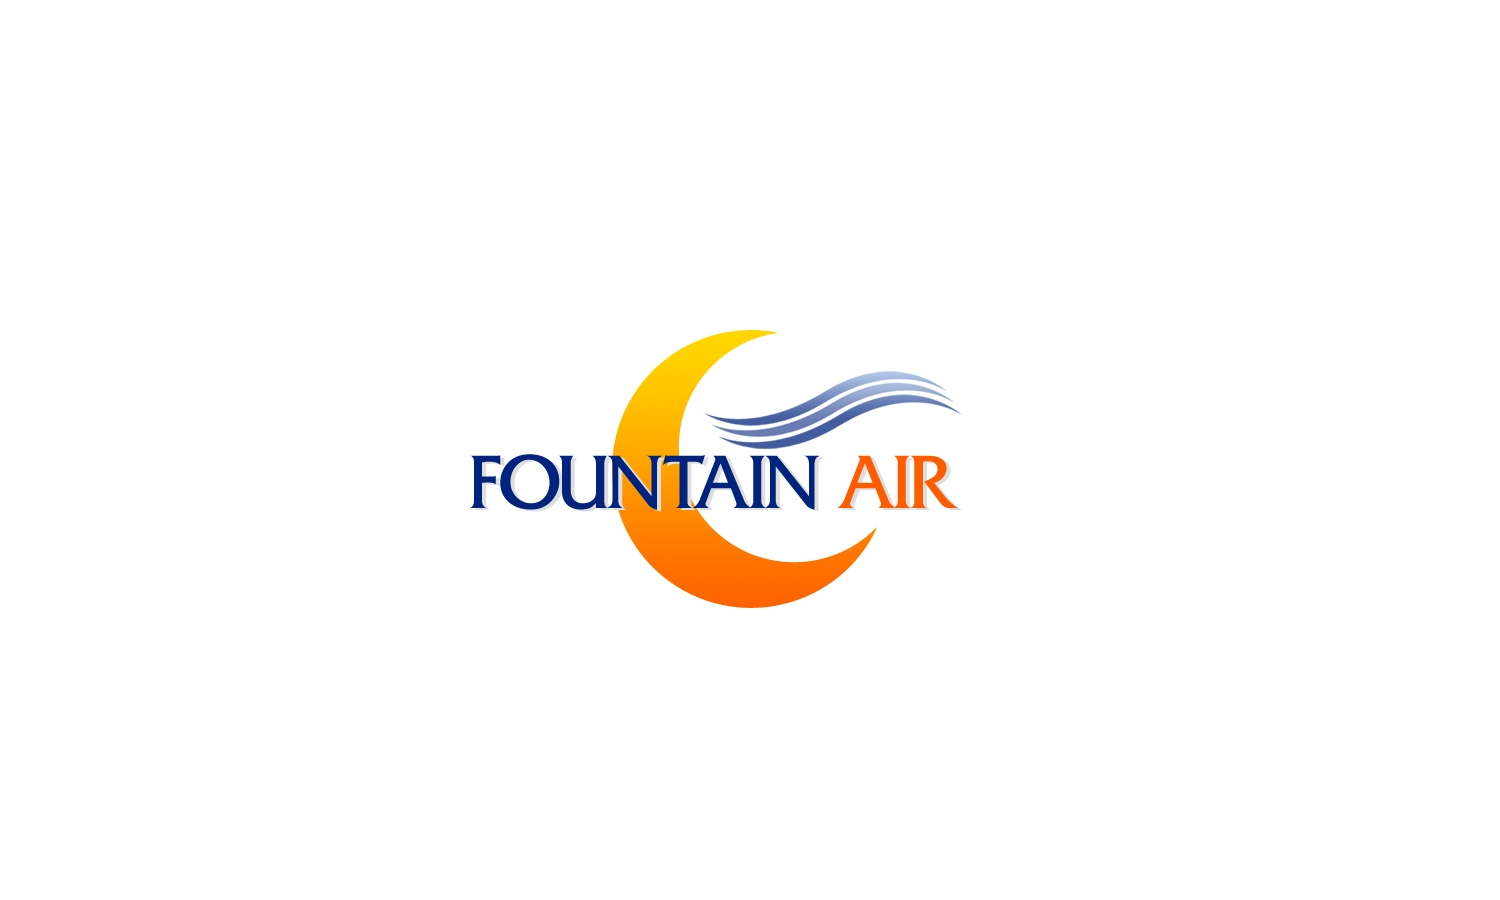 Fountain Air